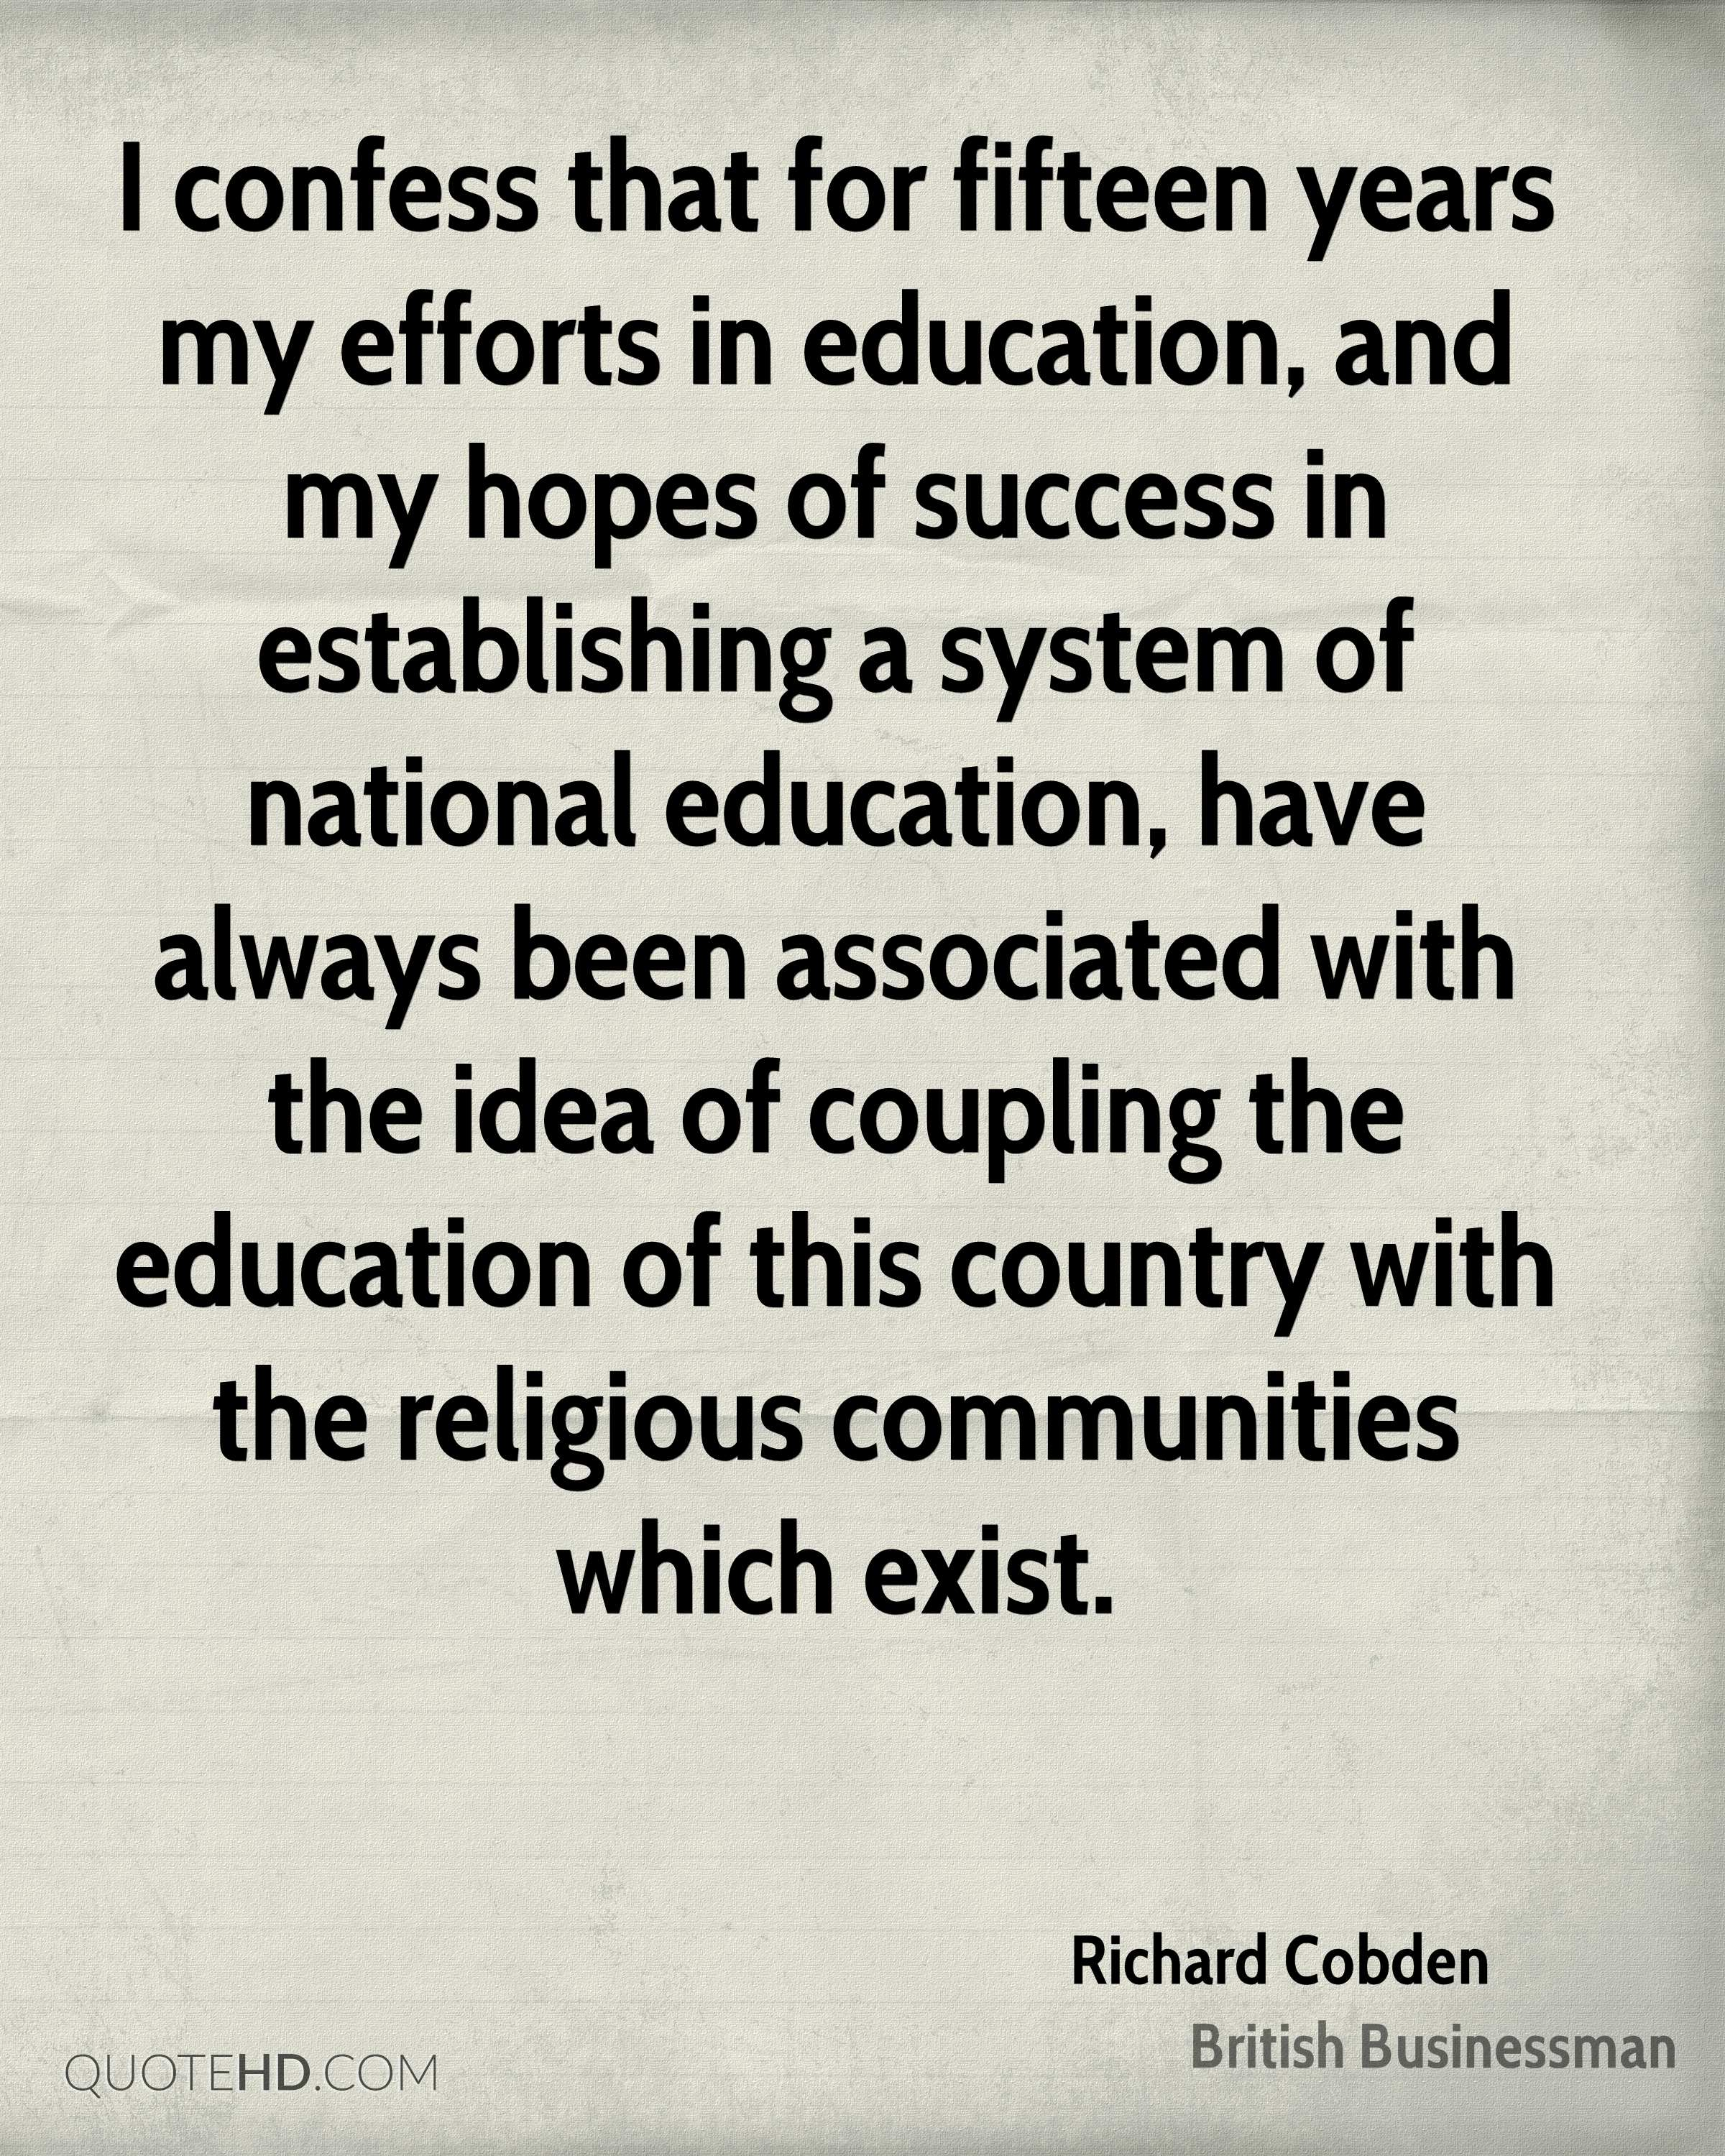 I confess that for fifteen years my efforts in education, and my hopes of success in establishing a system of national education, have always been associated with the idea of coupling the education of this country with the religious communities which exist.